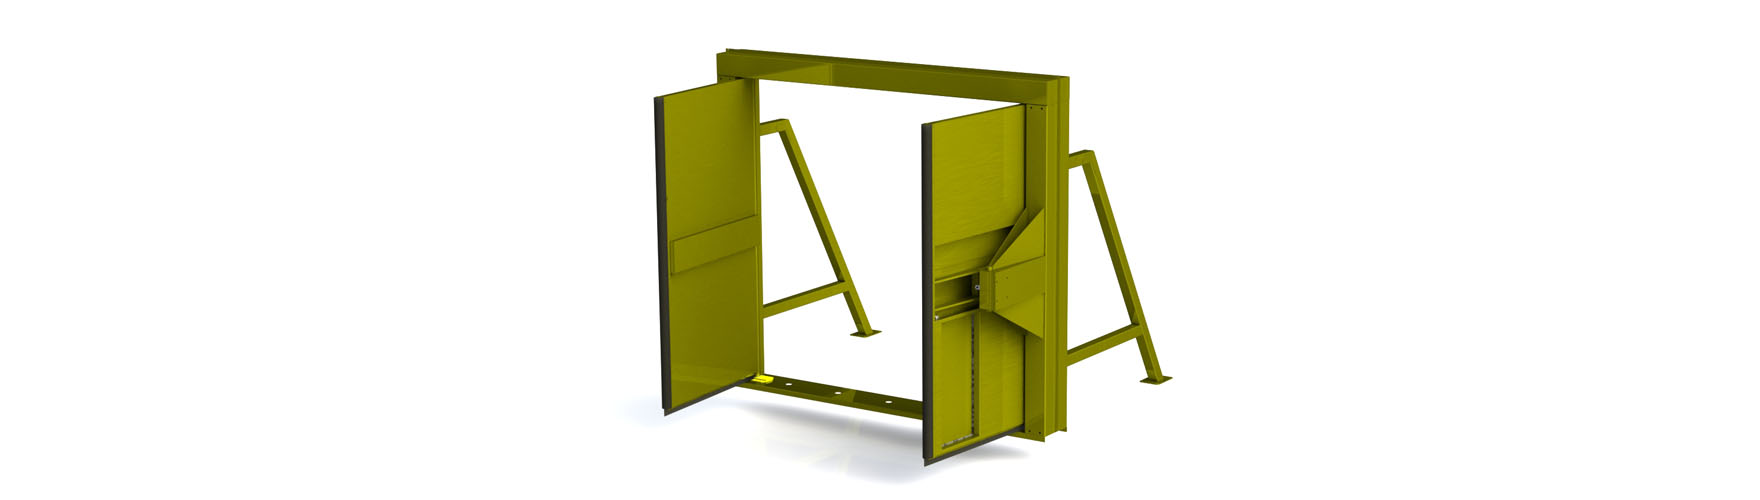 Mine Door Systems. mds-bf